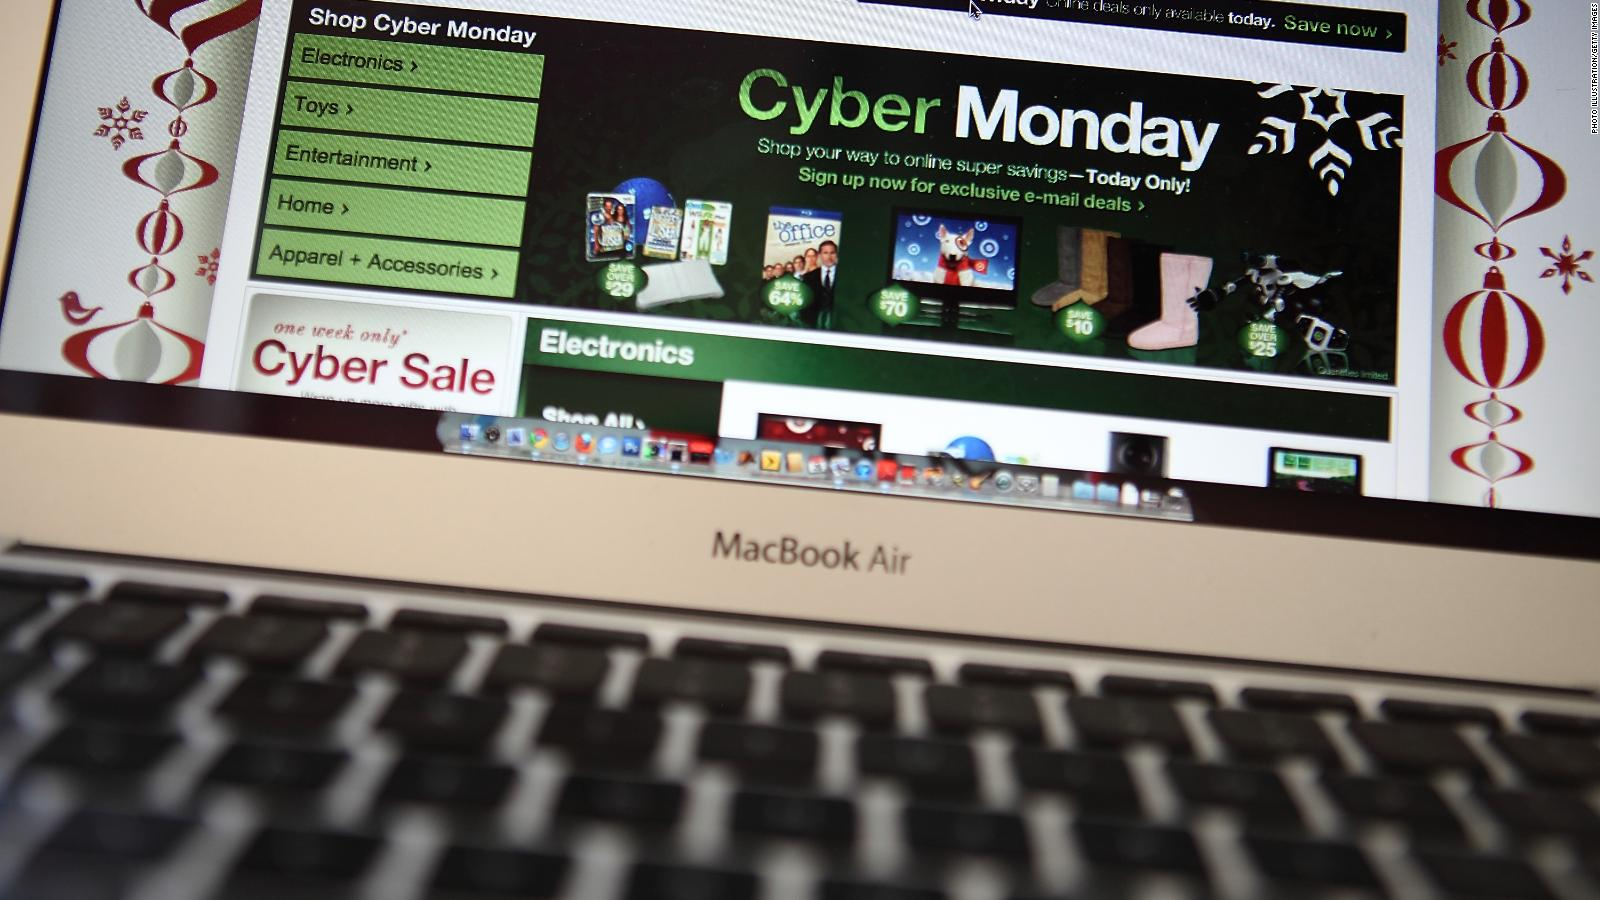 Cyber Monday Deals Fuel Online Shopping Cnn Video